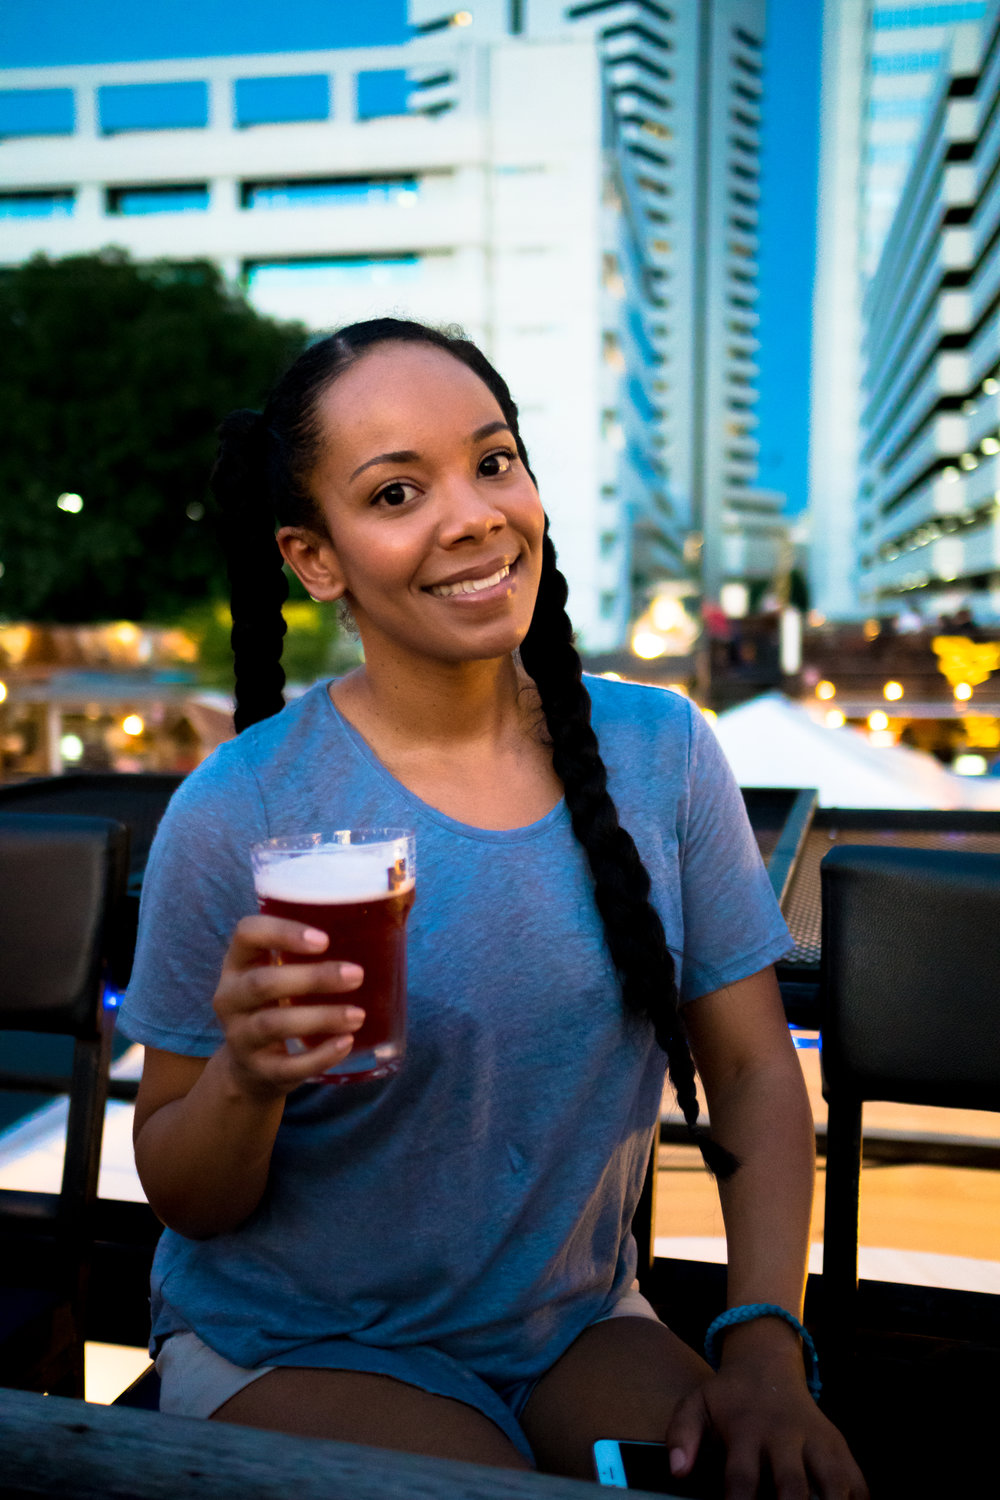 Enjoying a Beer at Ratchada Night Market